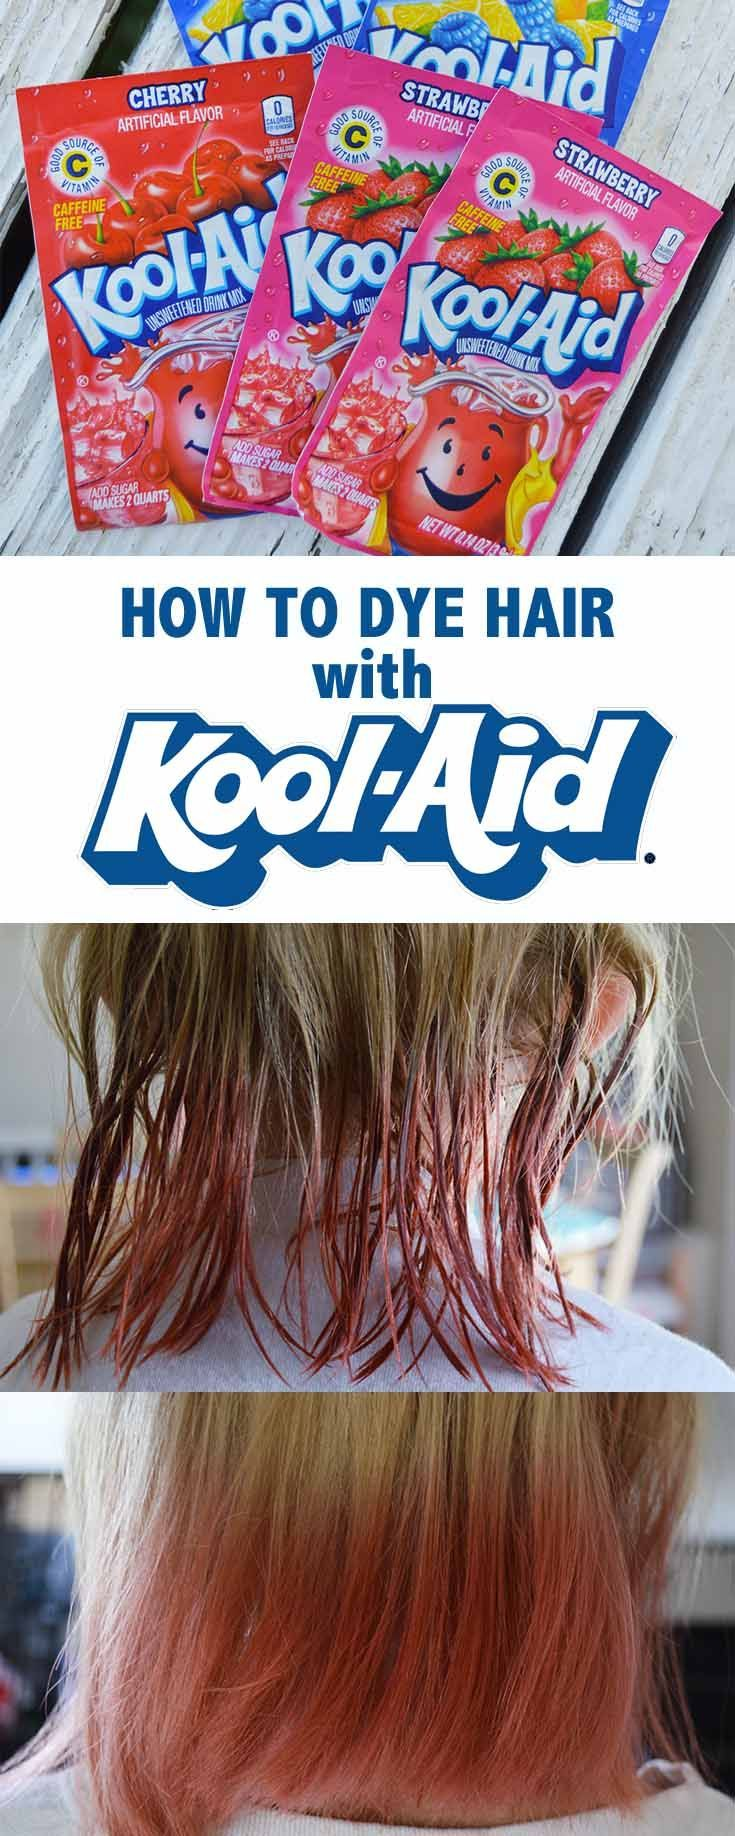 Everything You Need To Know To Dye Your Hair With Kool Aid